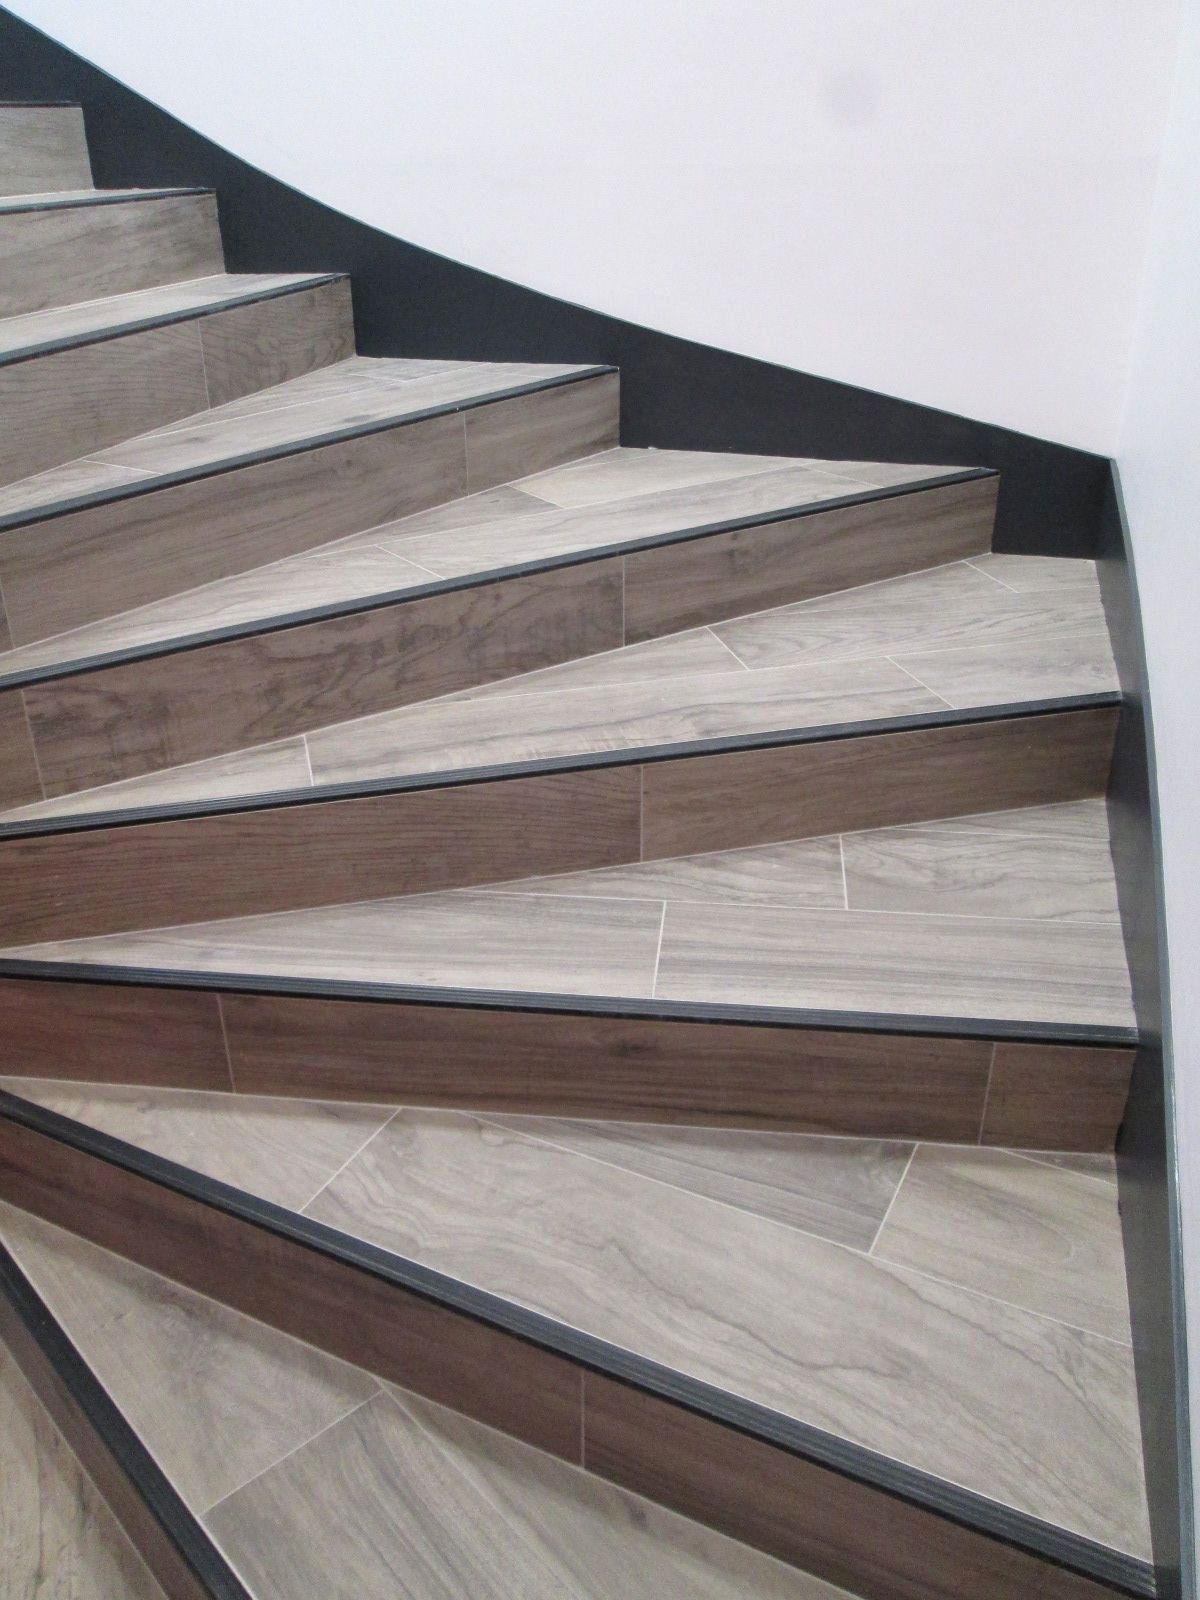 Nez De Marche Escalier Diy Staircase Makeover Carpet To Tile Transition Diy Staircase